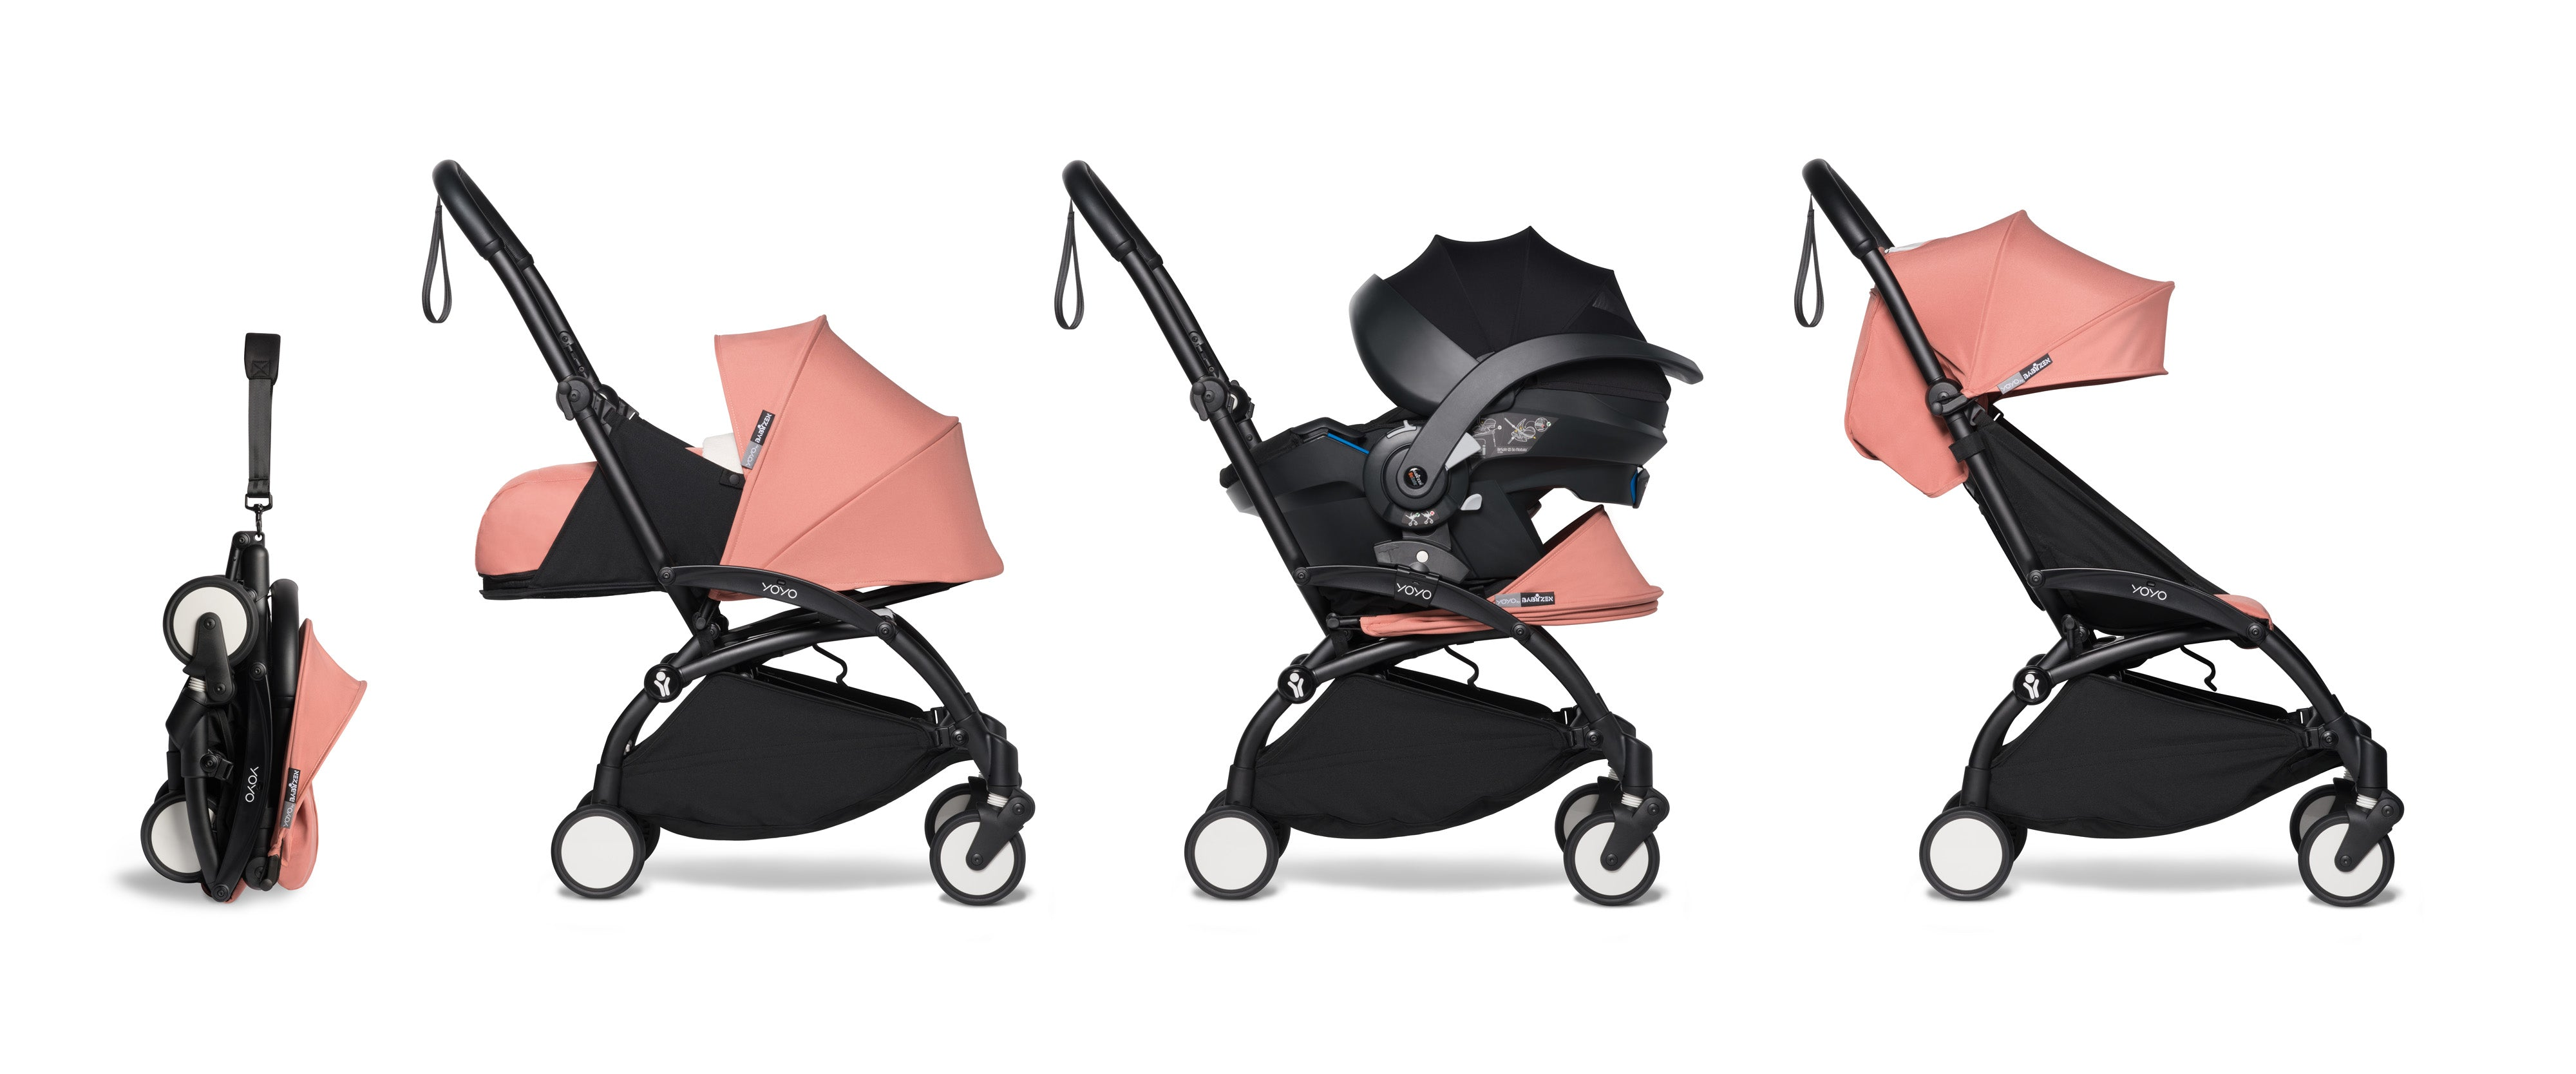 all-in-one BABYZEN stroller YOYO² 0+, car seat and 6+